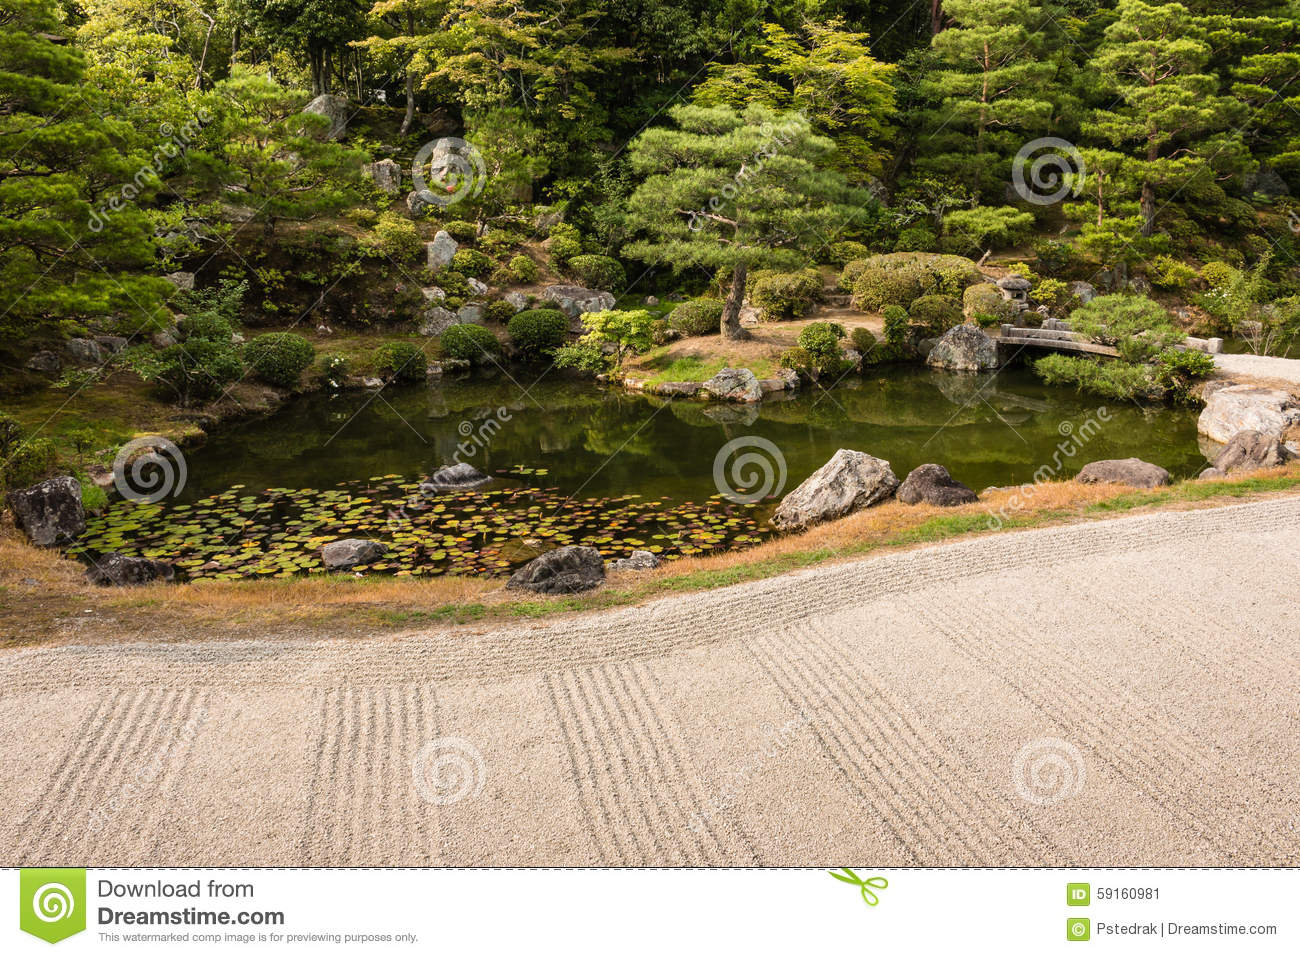 Zen Garden With Pond And Pruned Trees Stock Image - Image of gravel ...